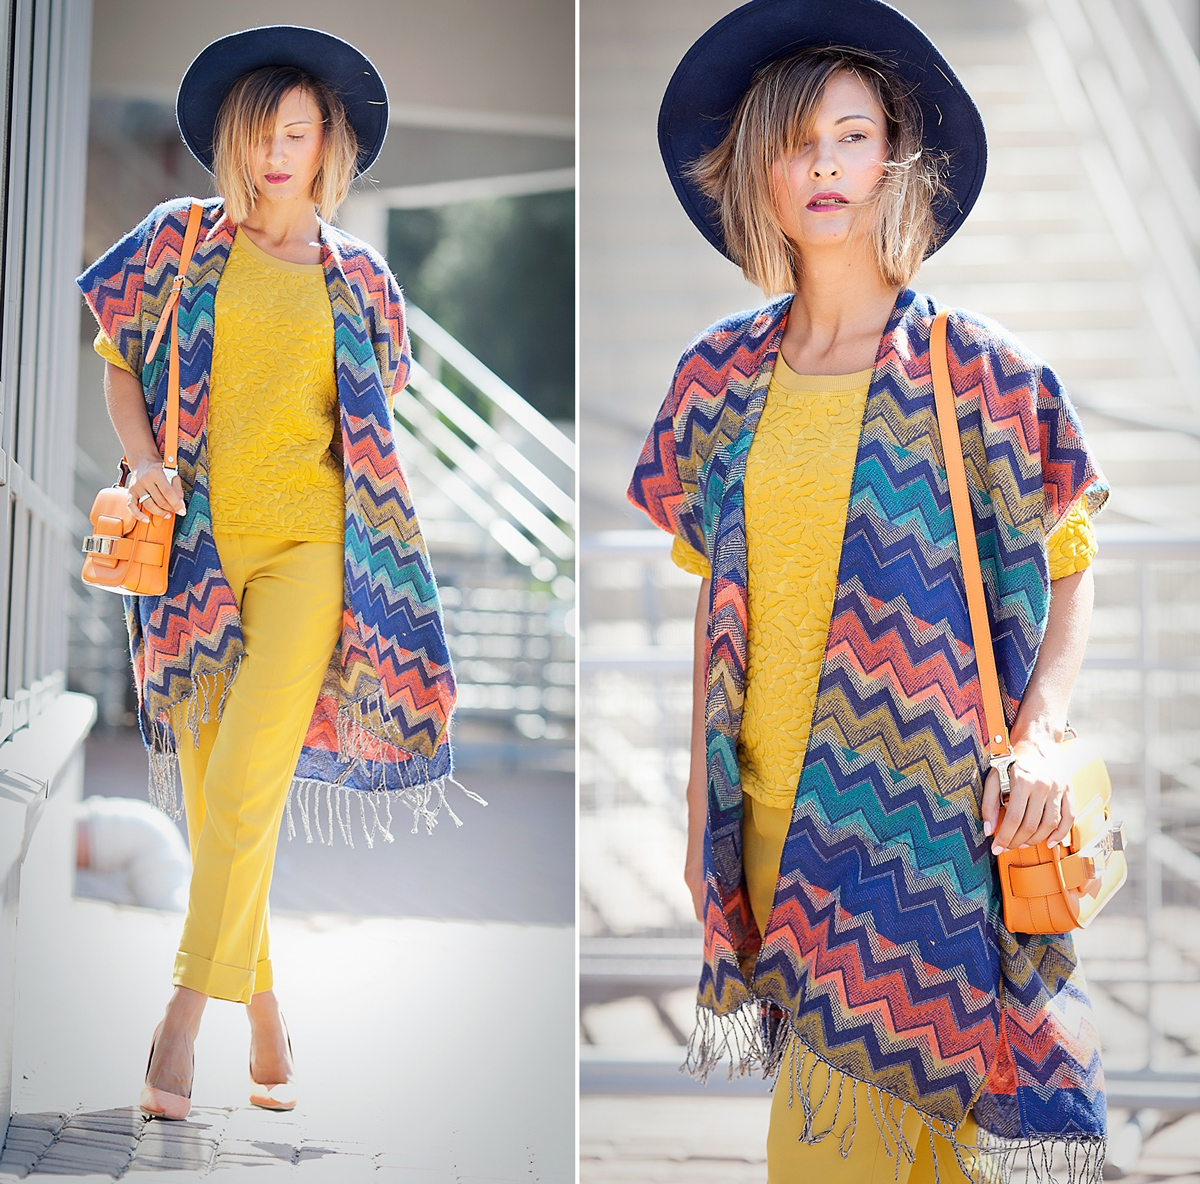 poncho-outfit-for-fall-2015-galant-girl